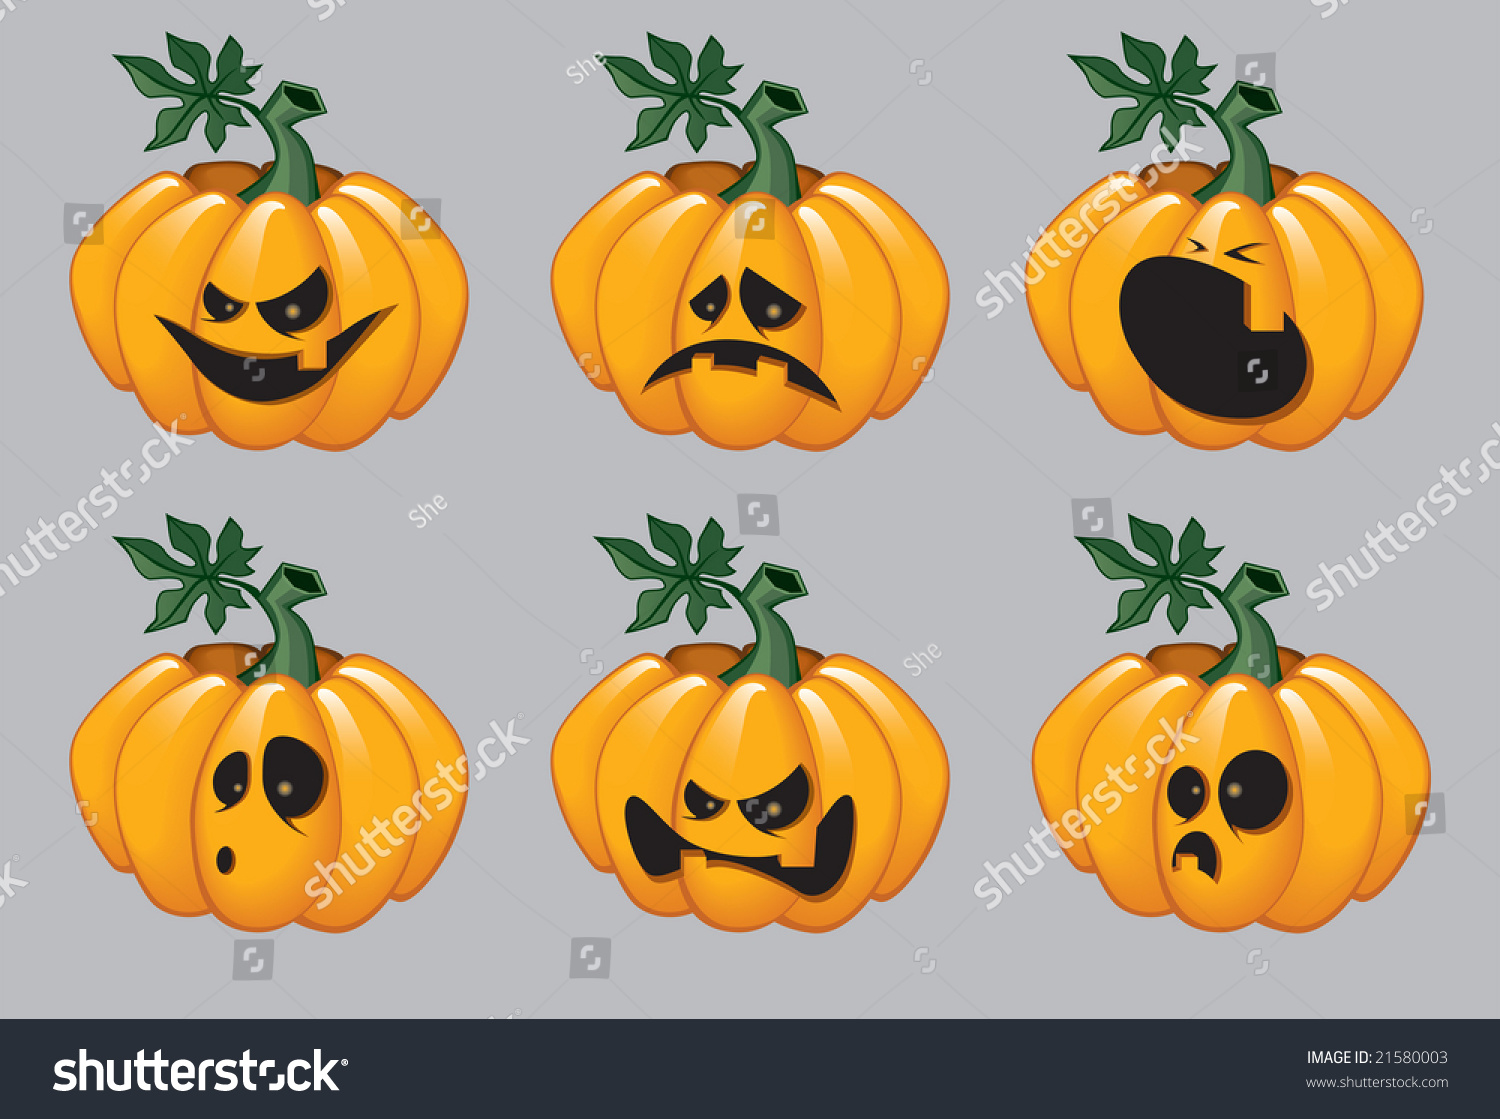 Cartoon Halloween Pumpkins With Emotions On Their Faces